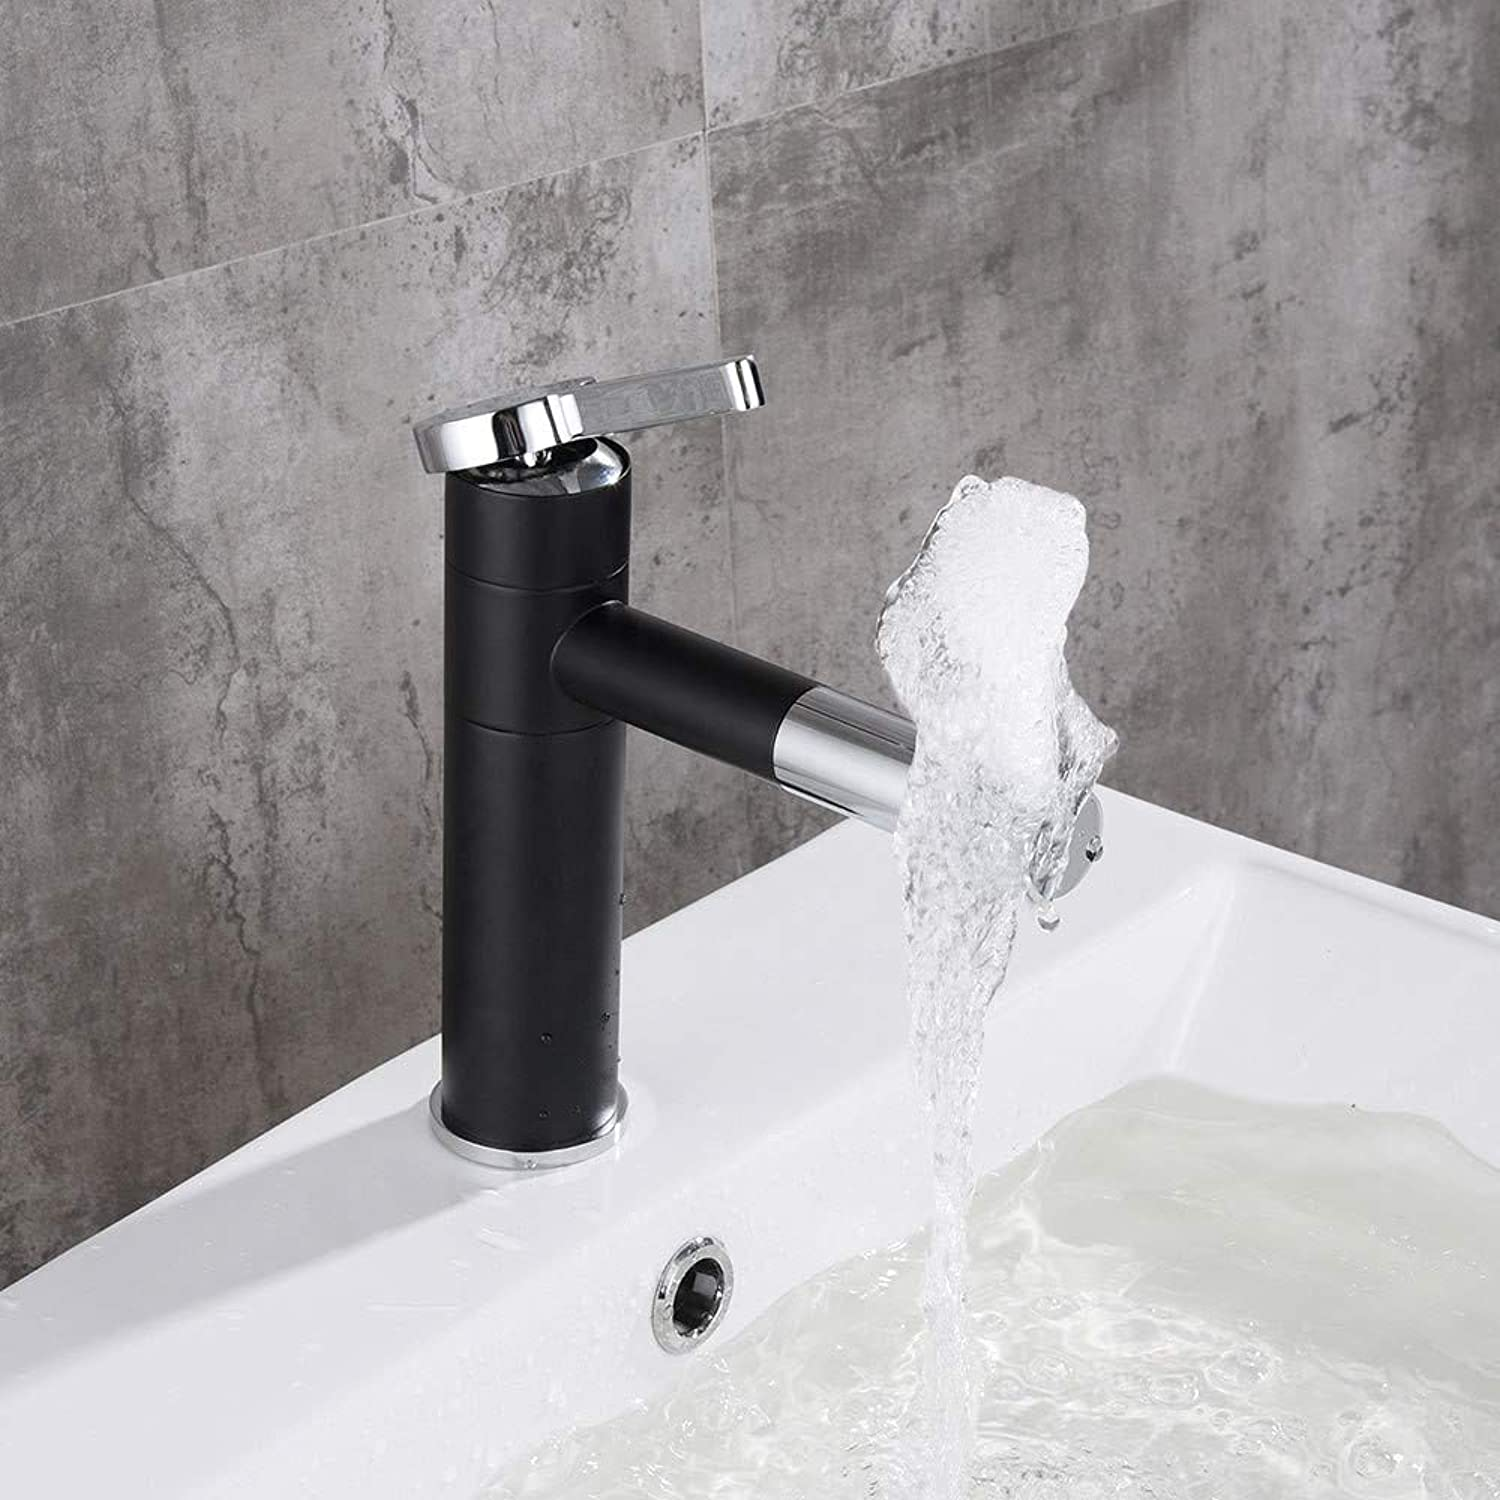 Bathroom Sink Tap European Basin Faucet Bathroom Hot and Cold Faucet Wash Basin redating Faucet Retro Black Single Hole Faucet